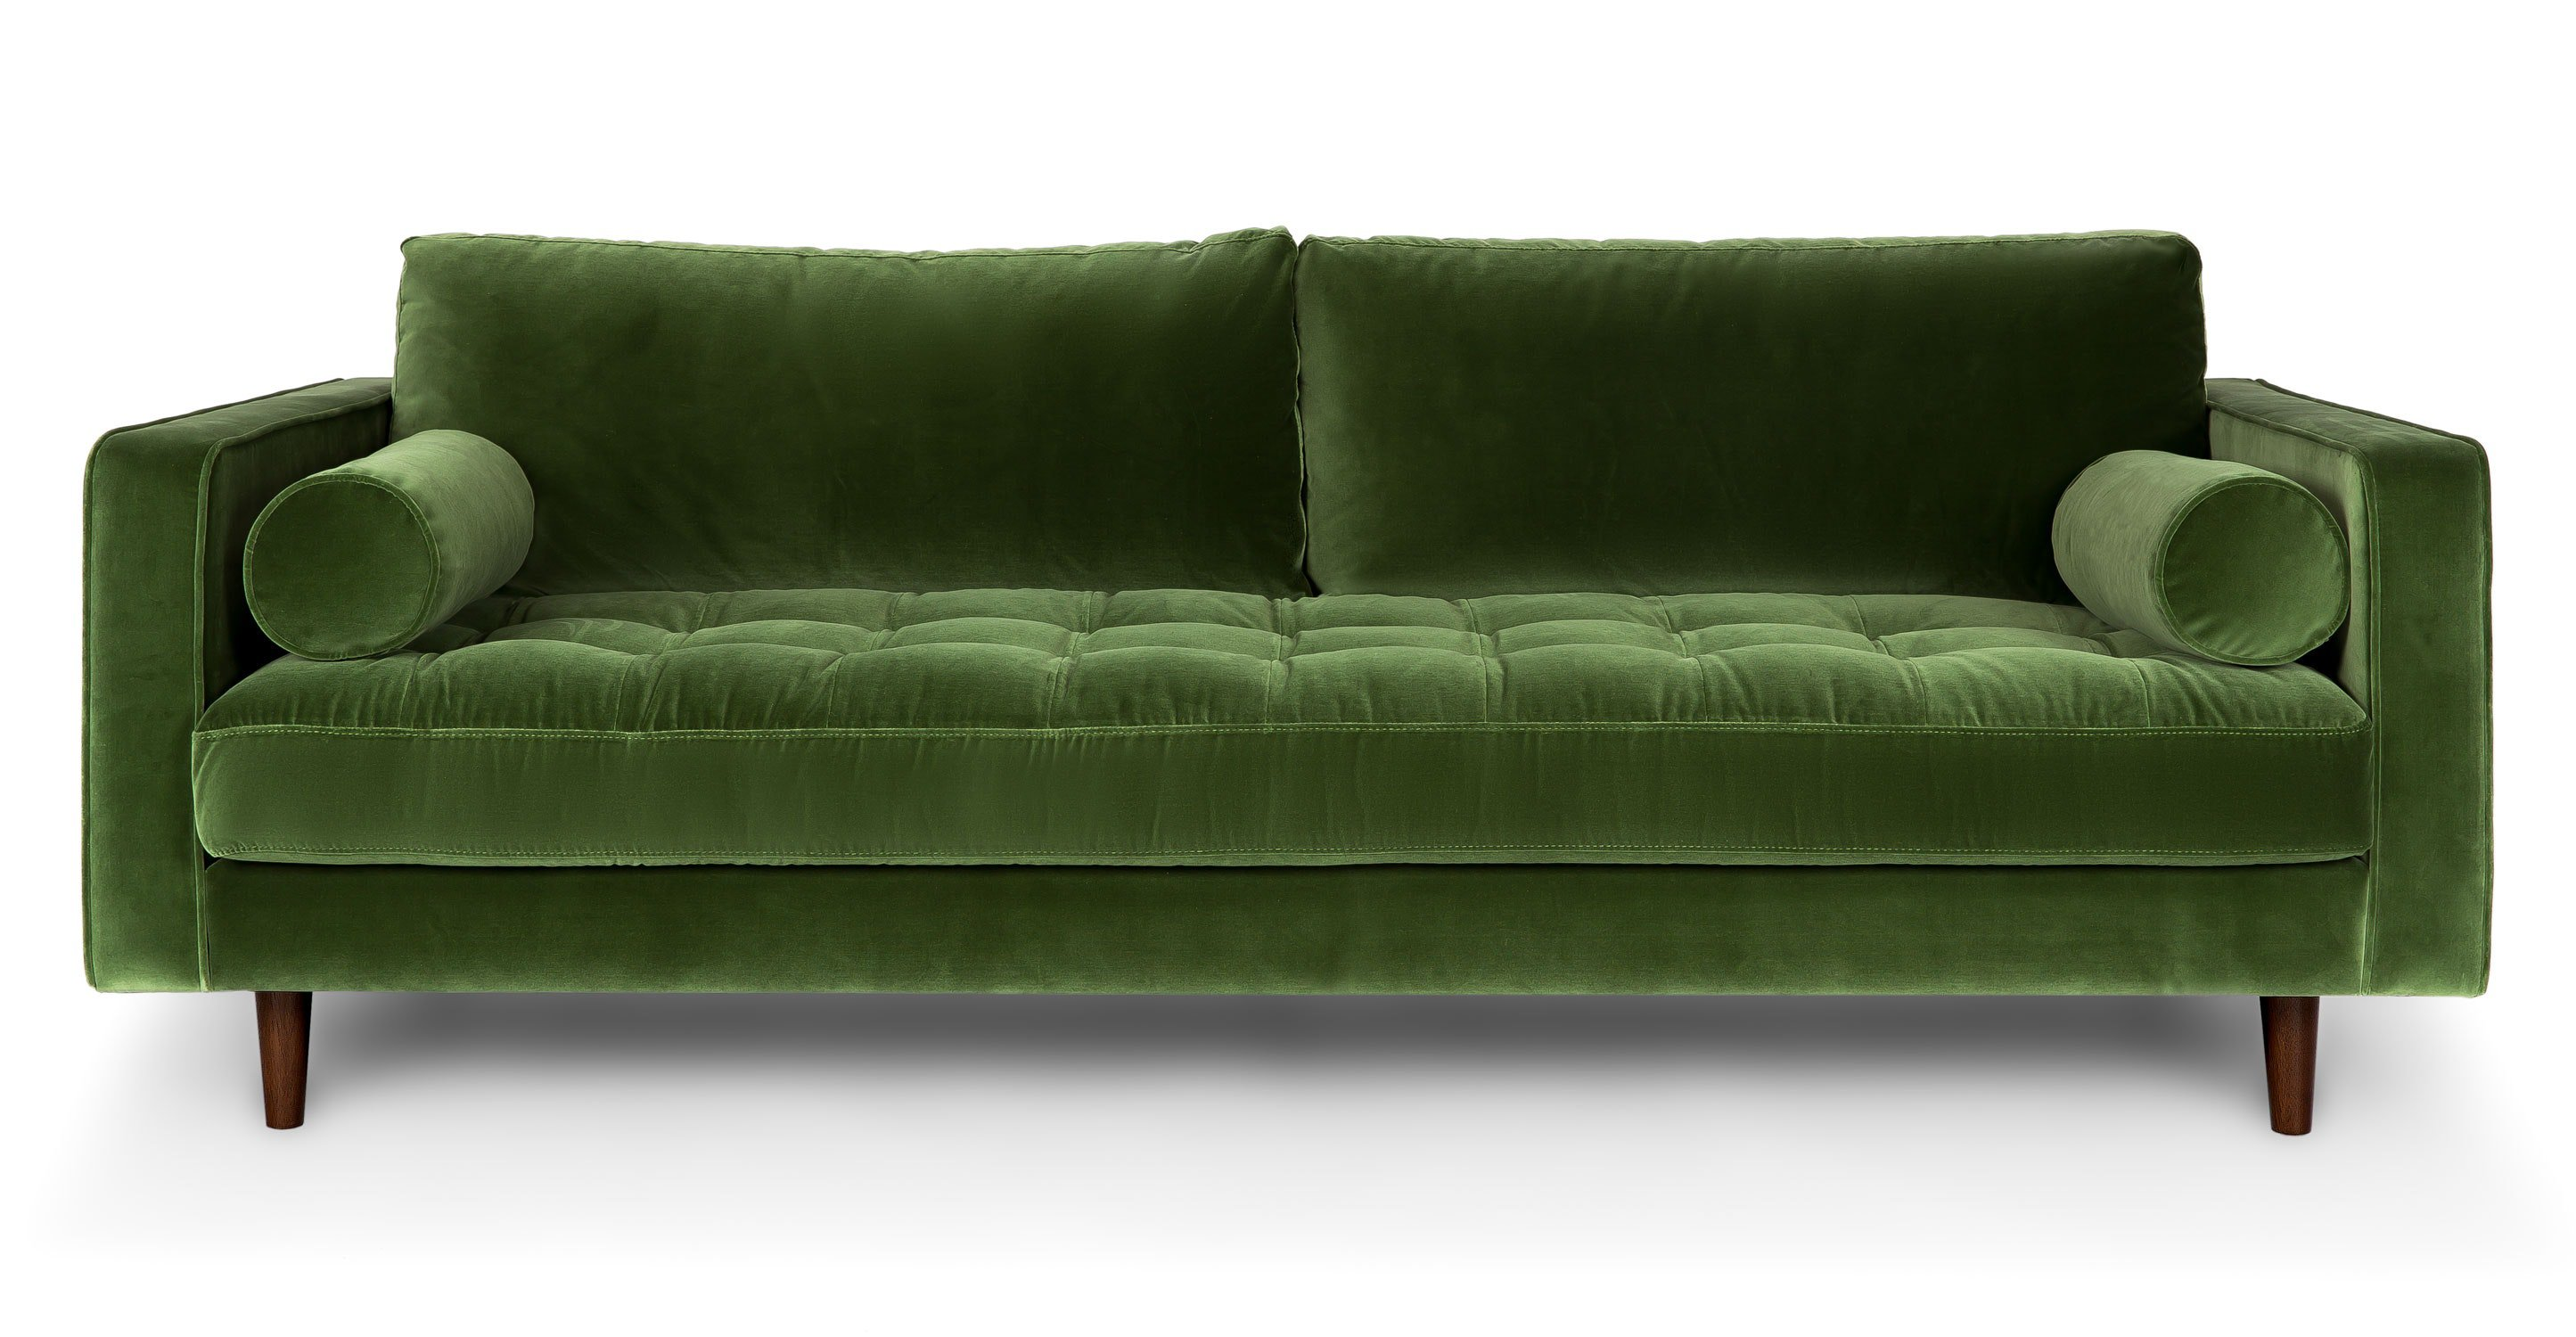 couch - Google Search